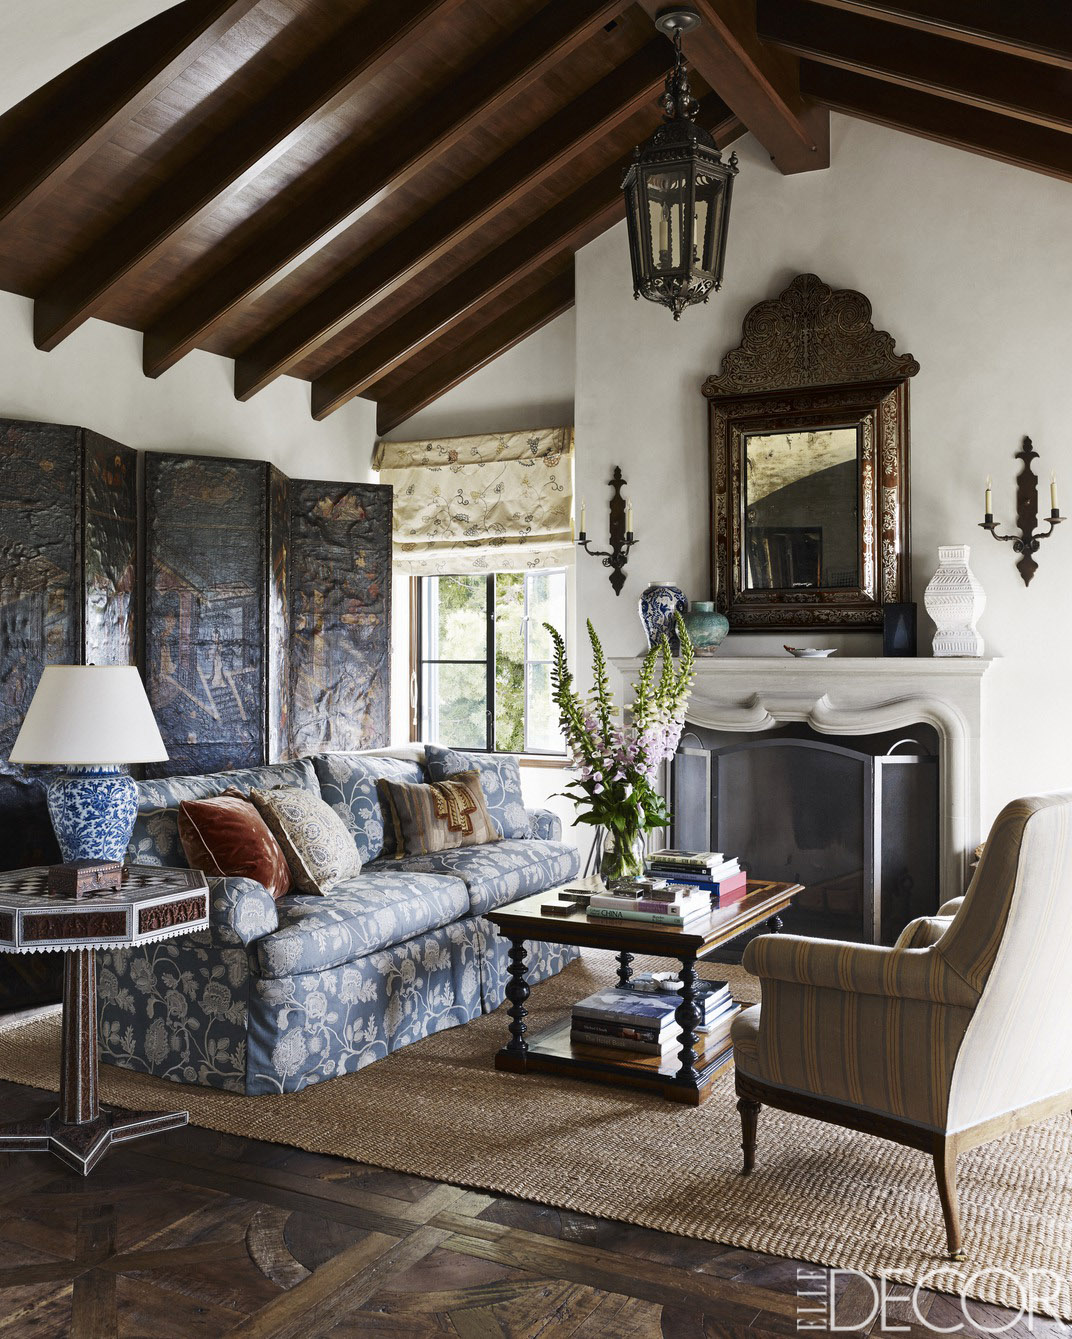 House tour a stunning california home inspired by the history of spain - Ca home design ideas ...